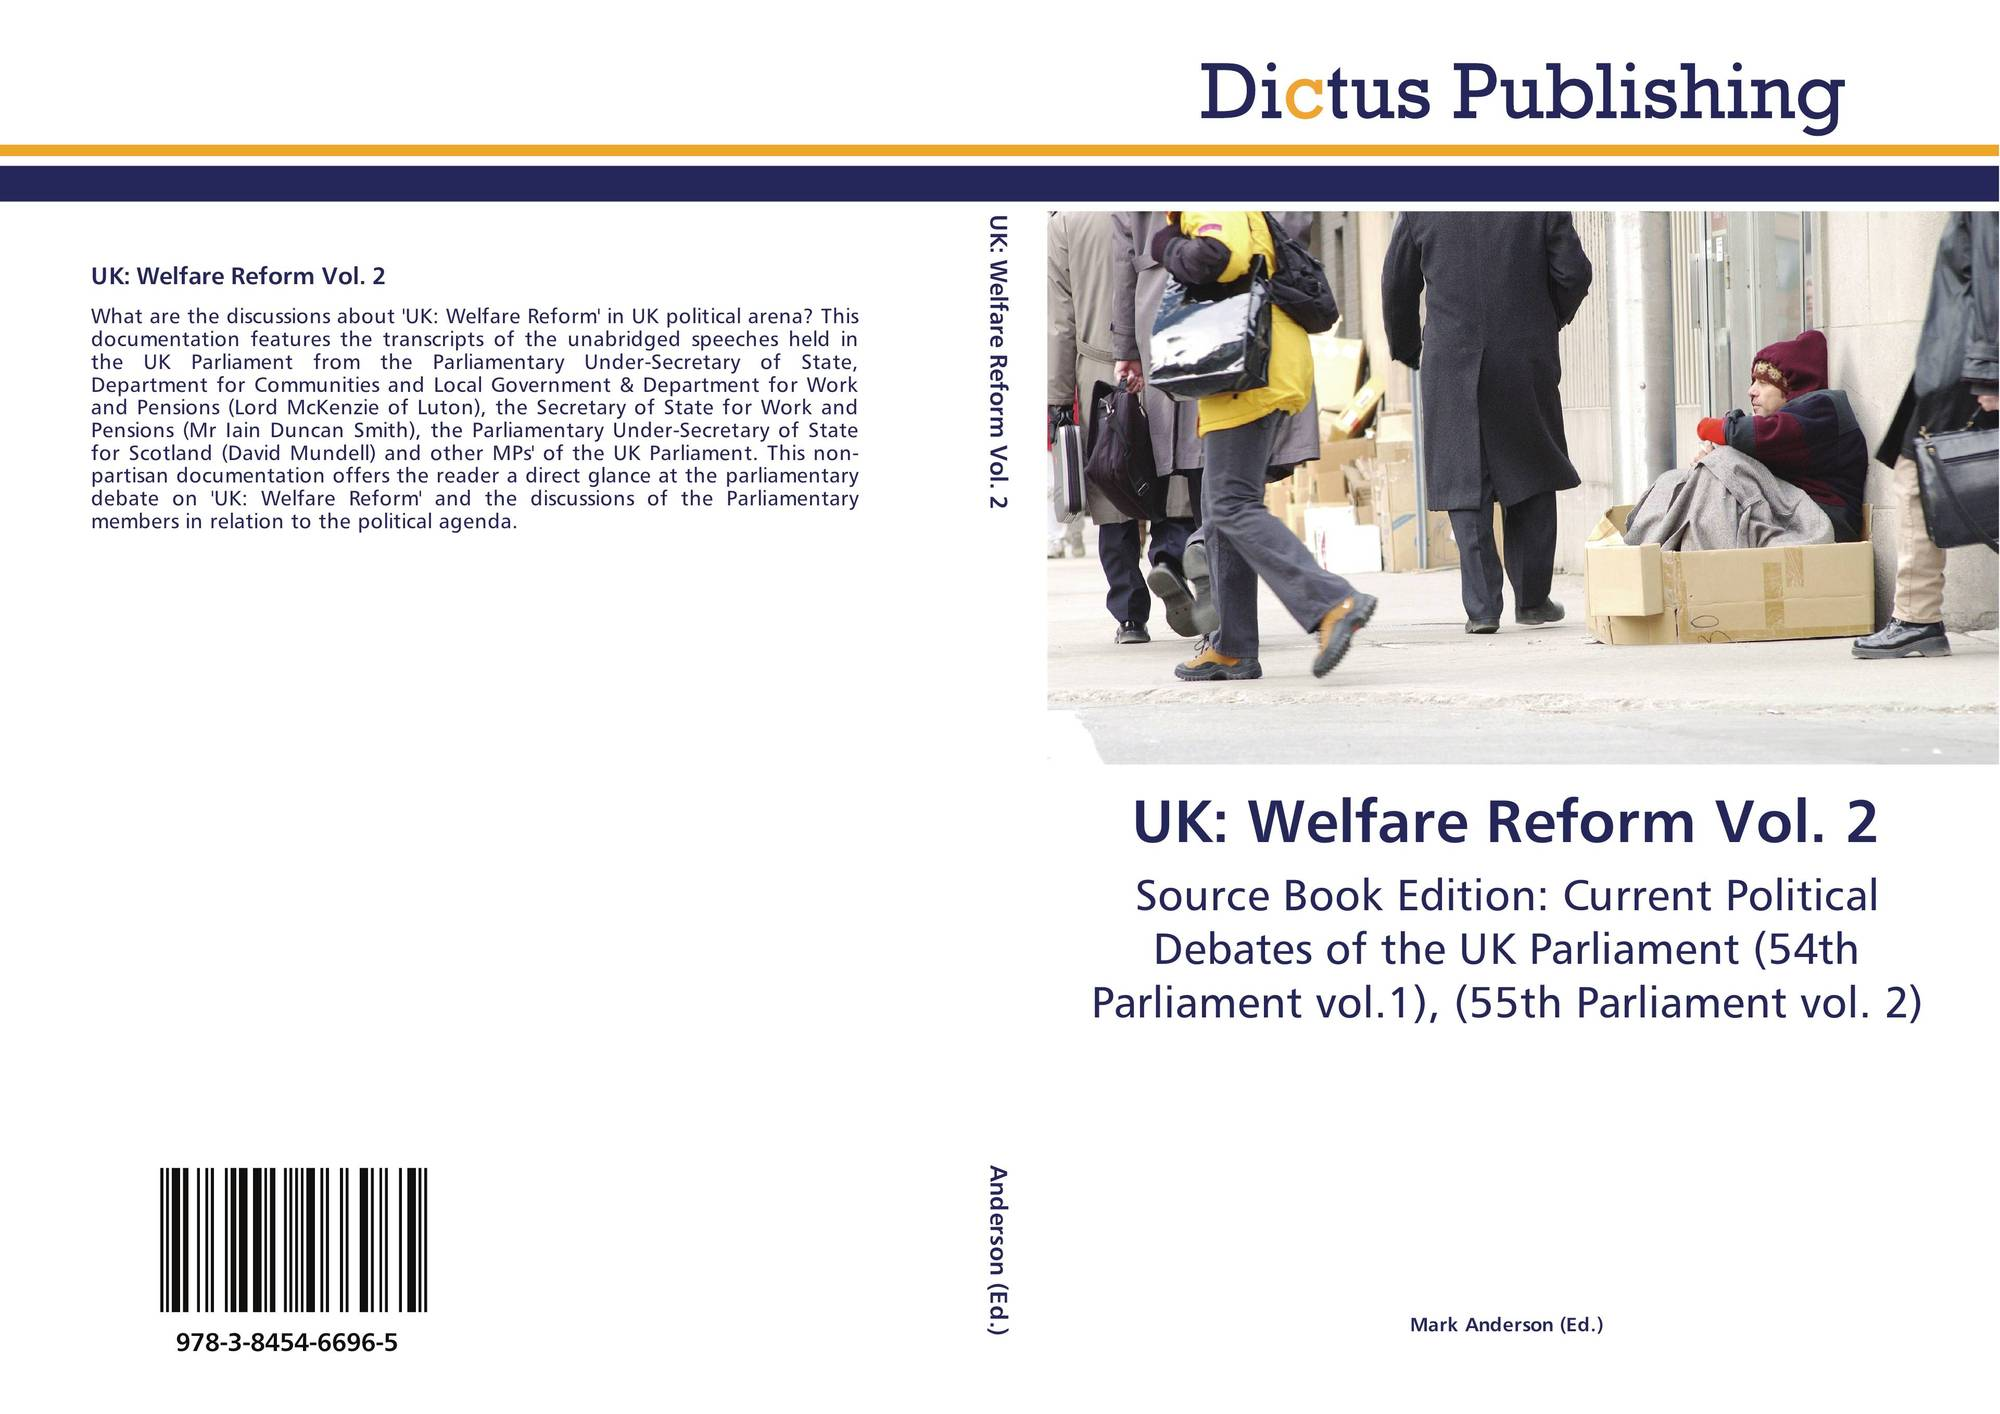 an analysis of the state of the uk welfare Welfare states across europe and beyond into the three or more ideal‐type categories the paper will discuss the methodological problems in comparing macro‐regime configurations in a medium‐n research design, using the substantial comparative research on welfare state regime typologies.